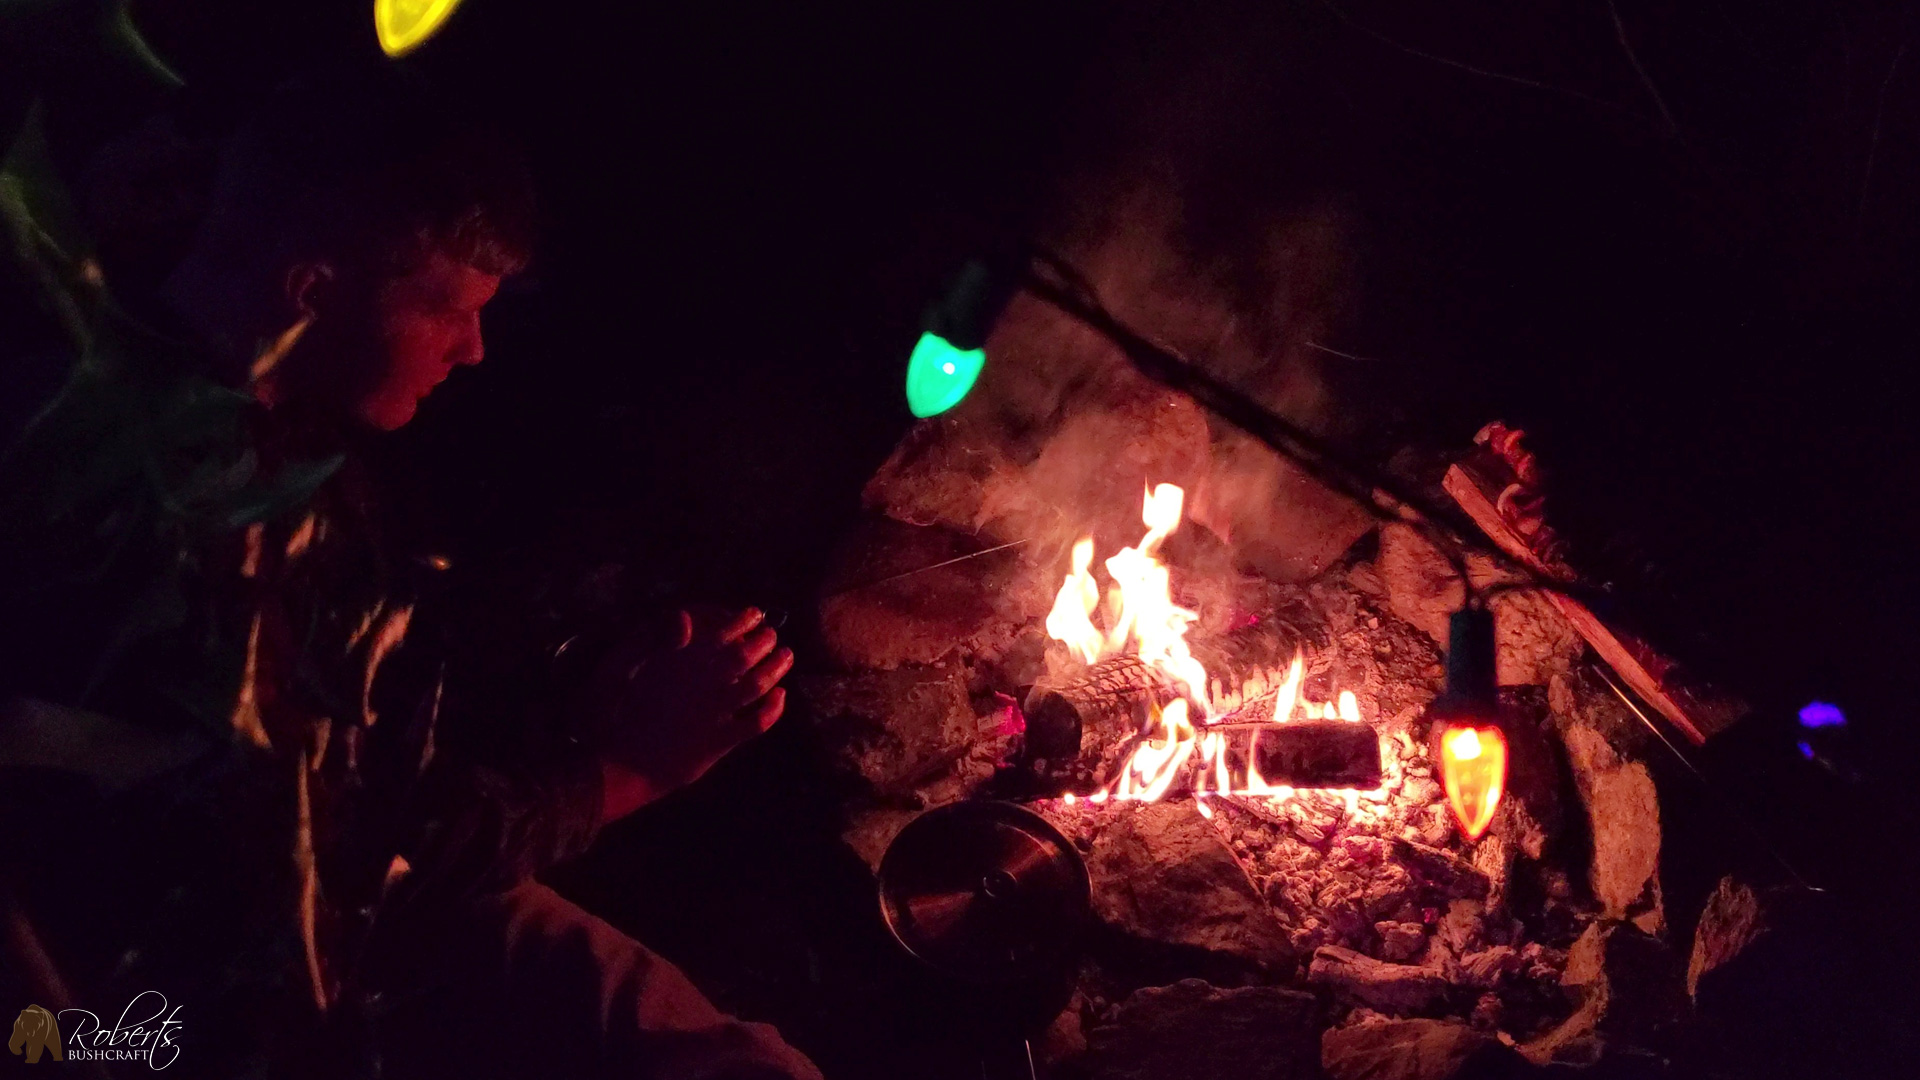 Christmas lights on an Aqua Quest tarp highlight warming my hands over the campfire on the Roanoke River